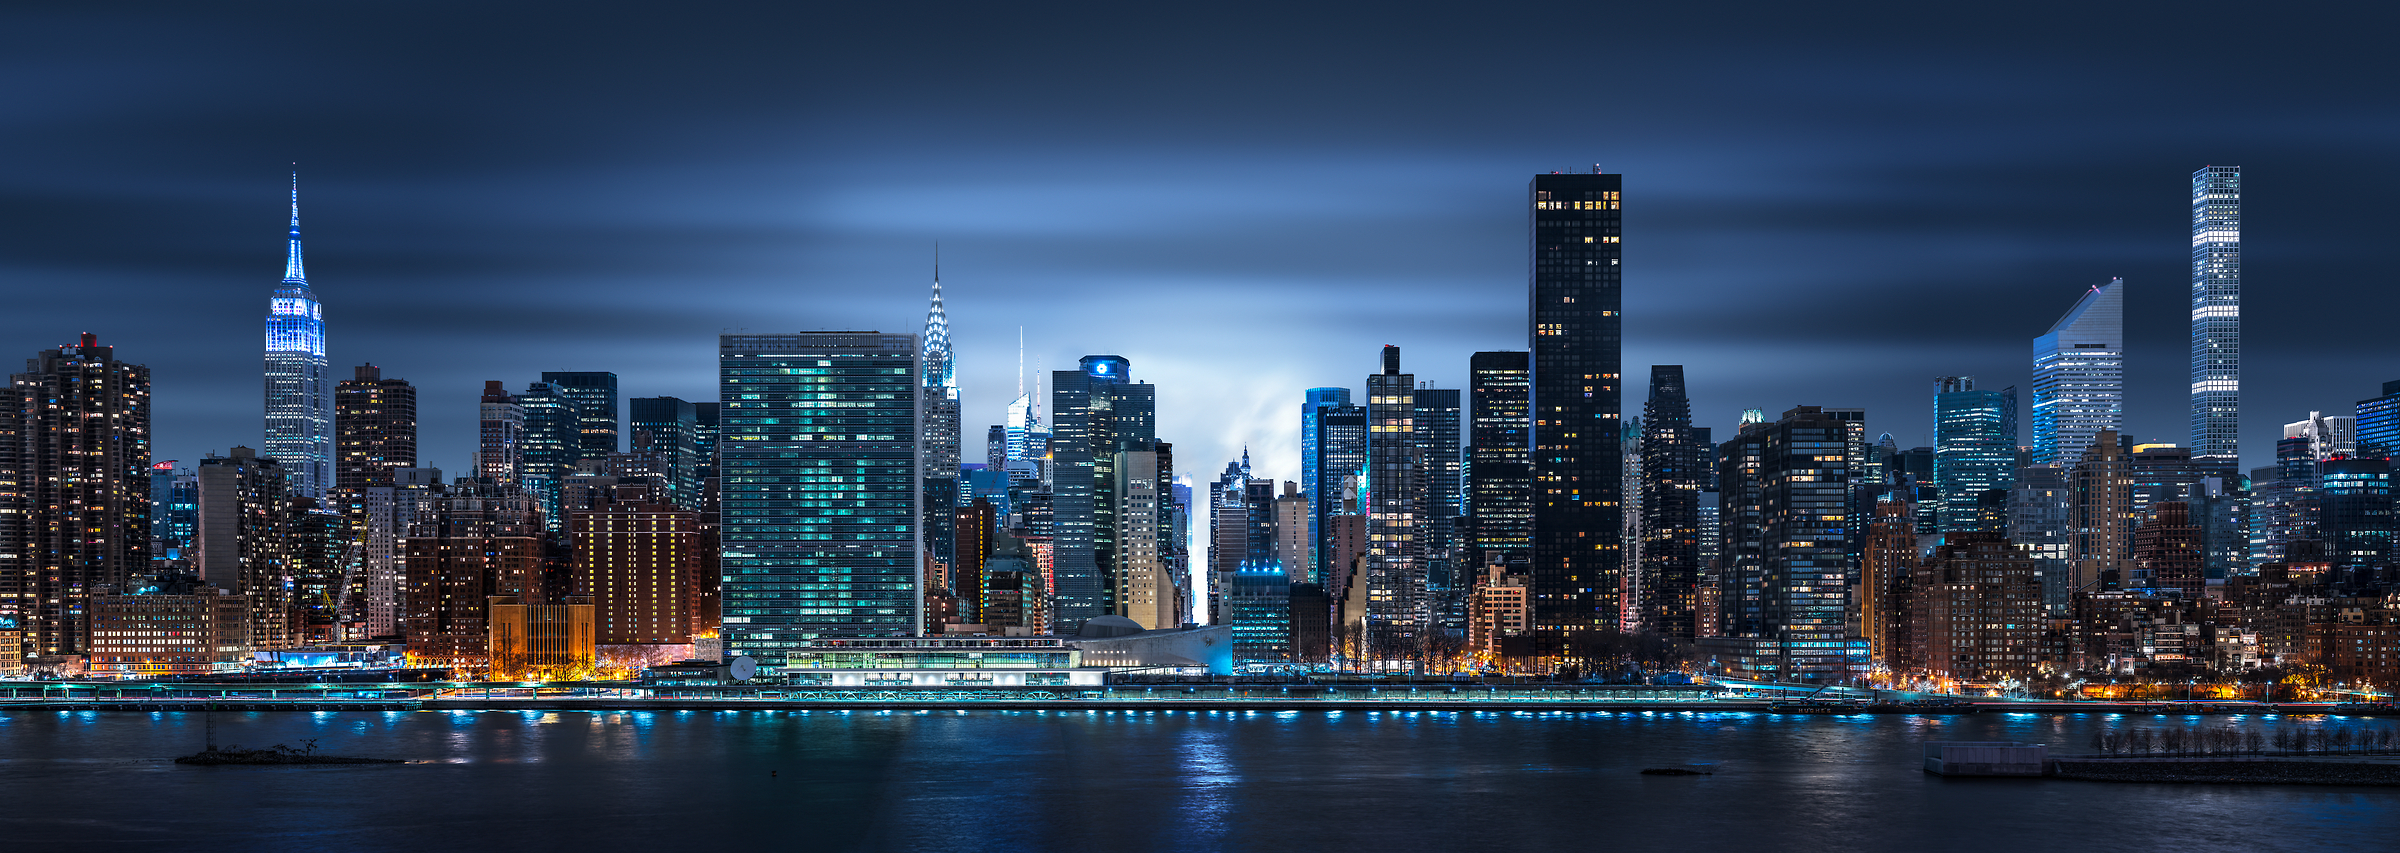 4,122 megapixels! A very high resolution, large-format VAST photo print of the NYC skyline at night with the East River; cityscape photo created by Dan Piech